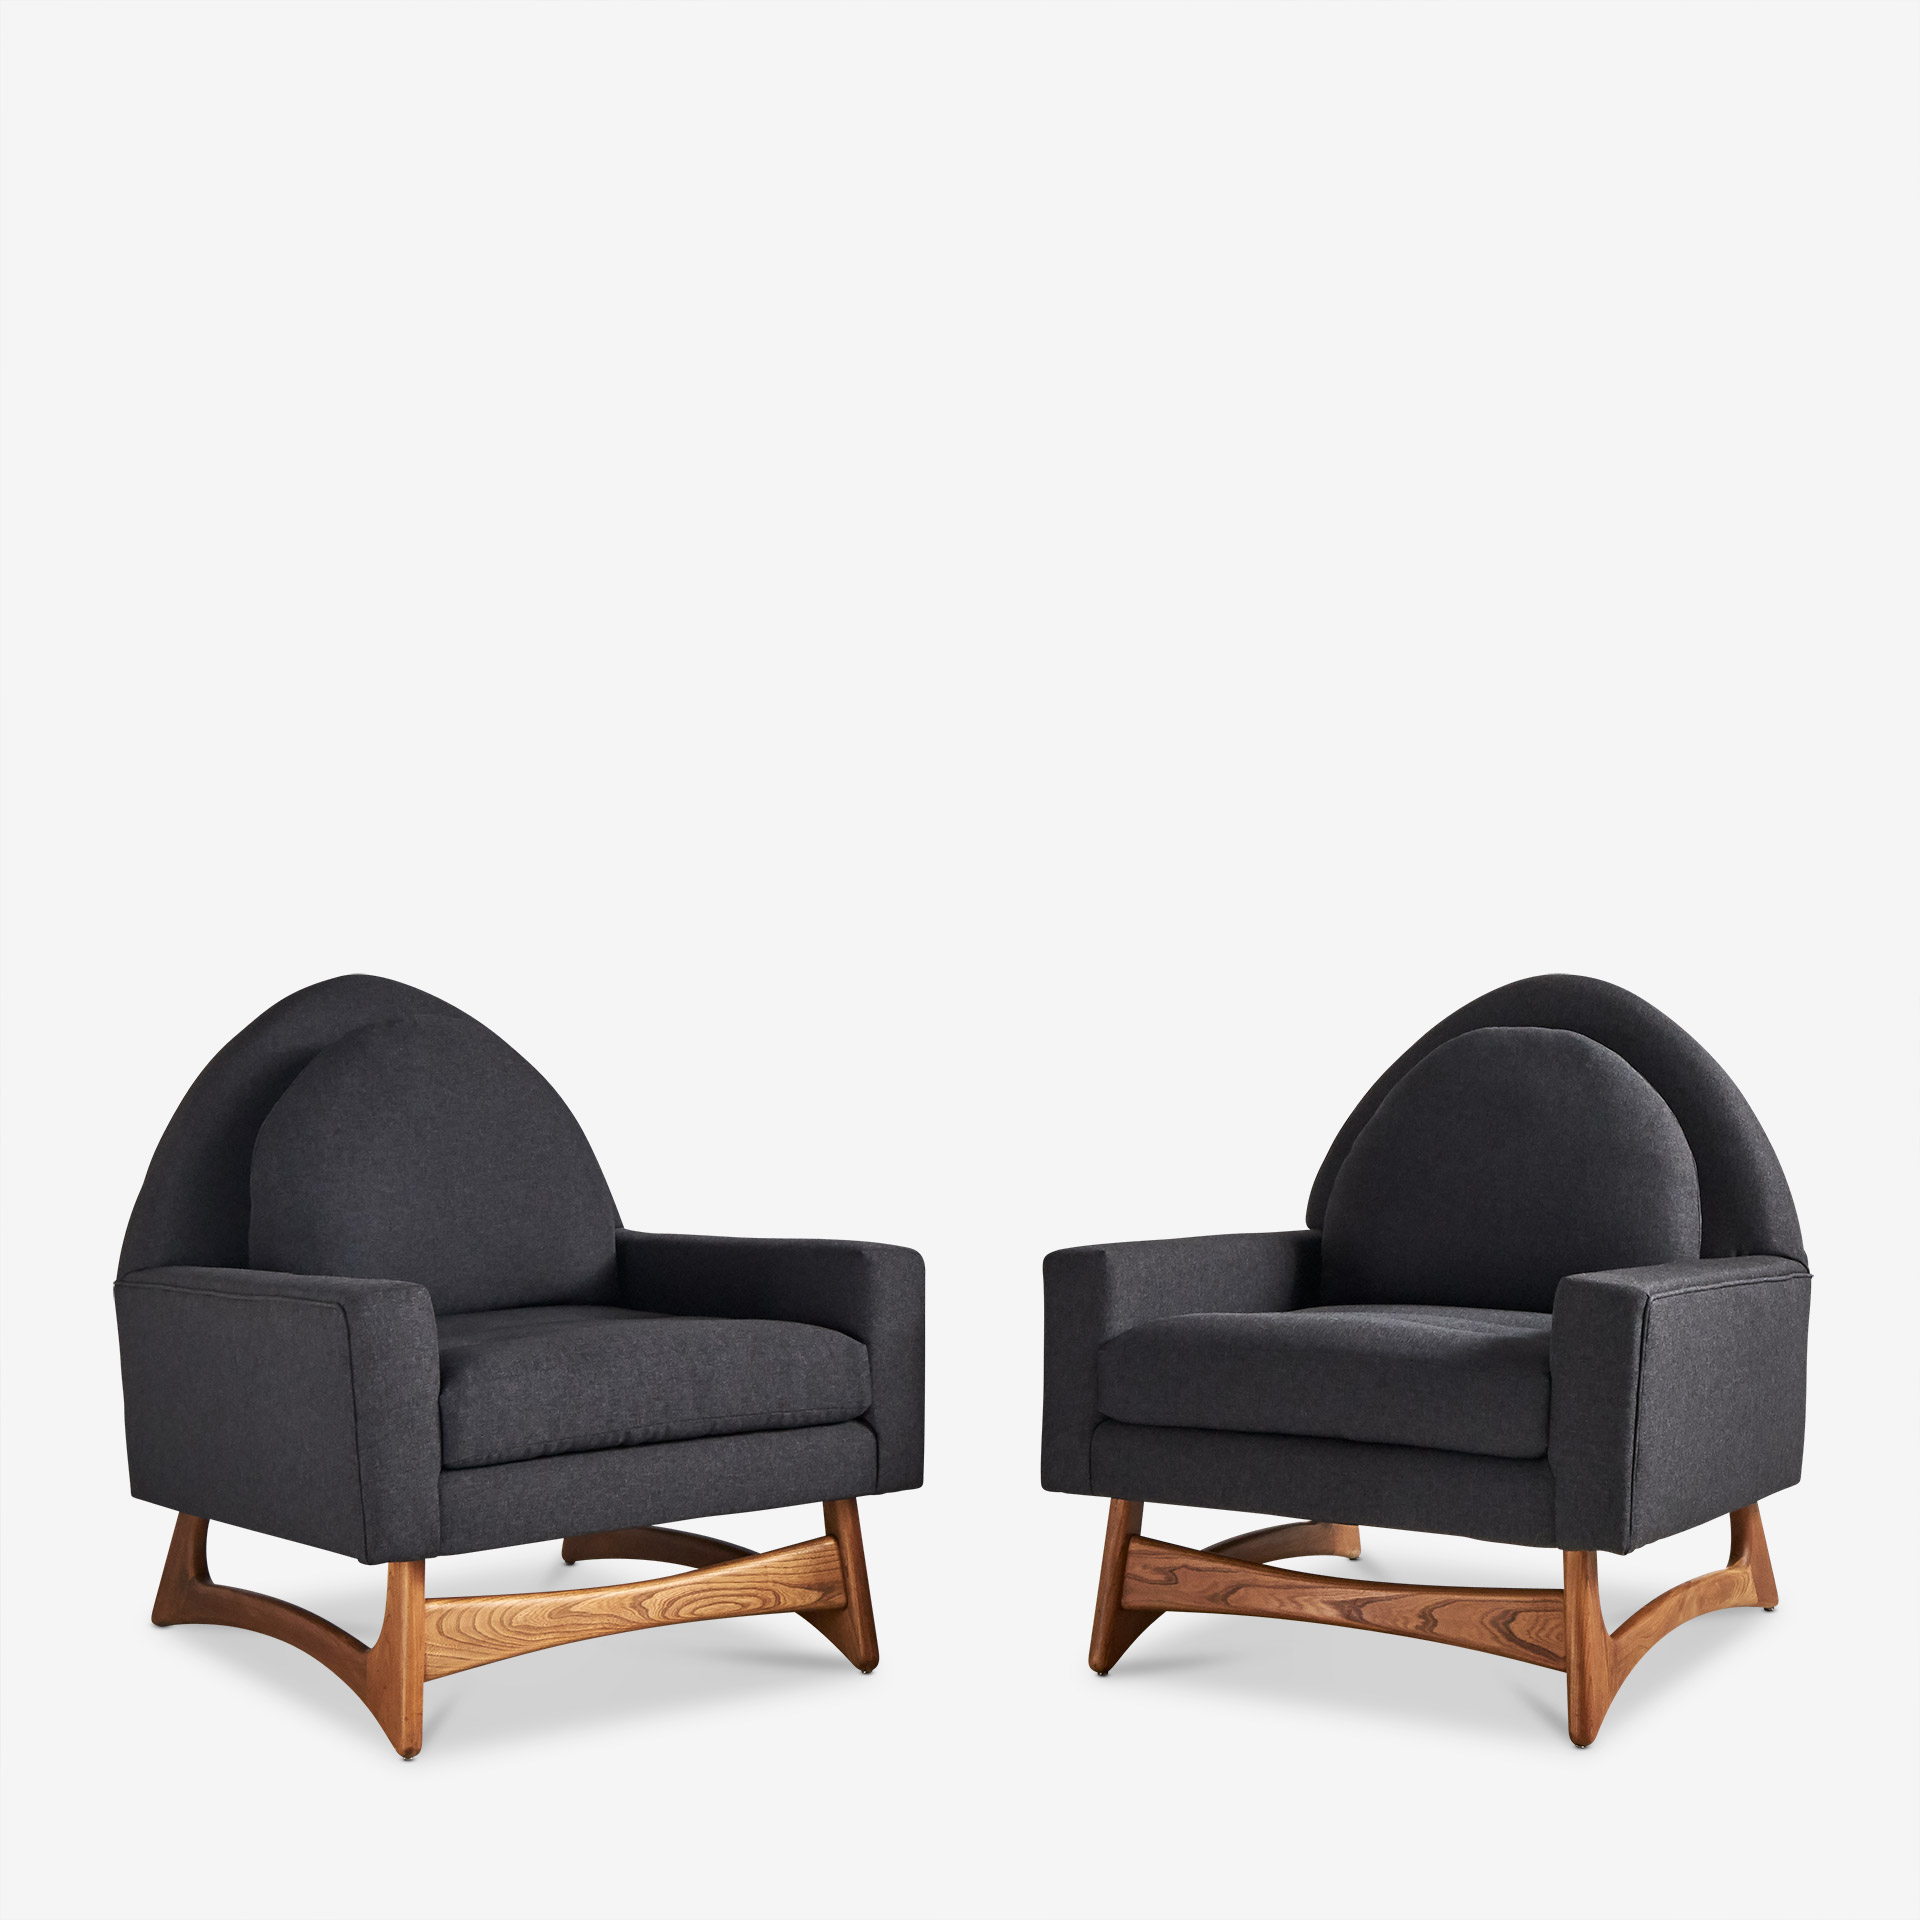 adrian pearsall chair knoll spark pair of lounge chairs attributed to south loop loft